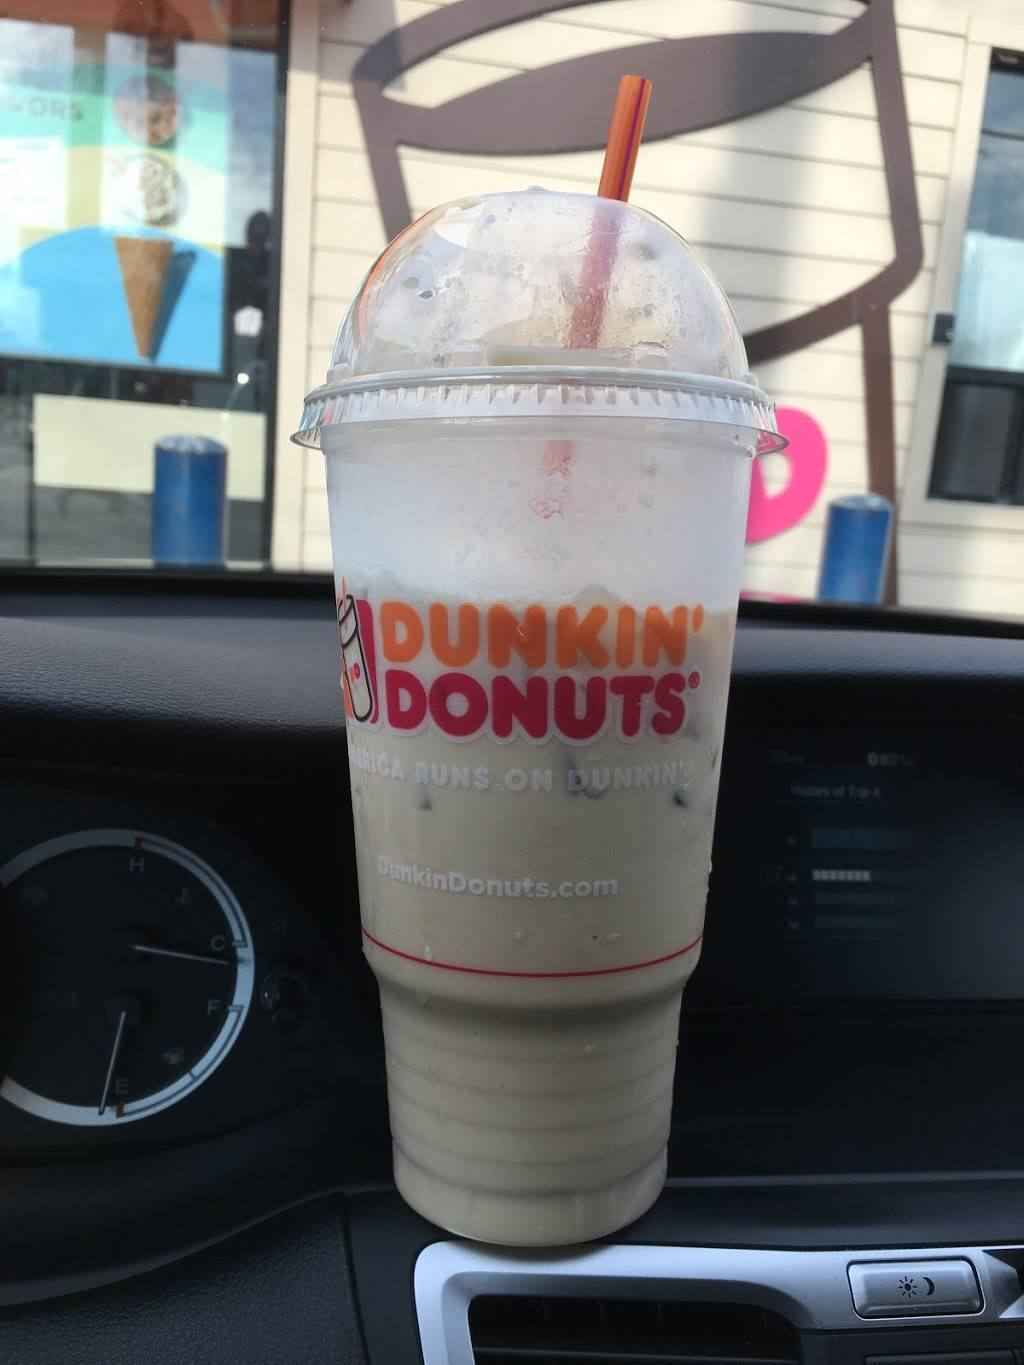 Dunkin Donuts   cafe   439 Crescent St, Brooklyn, NY 11208, USA   8622191333 OR +1 862-219-1333